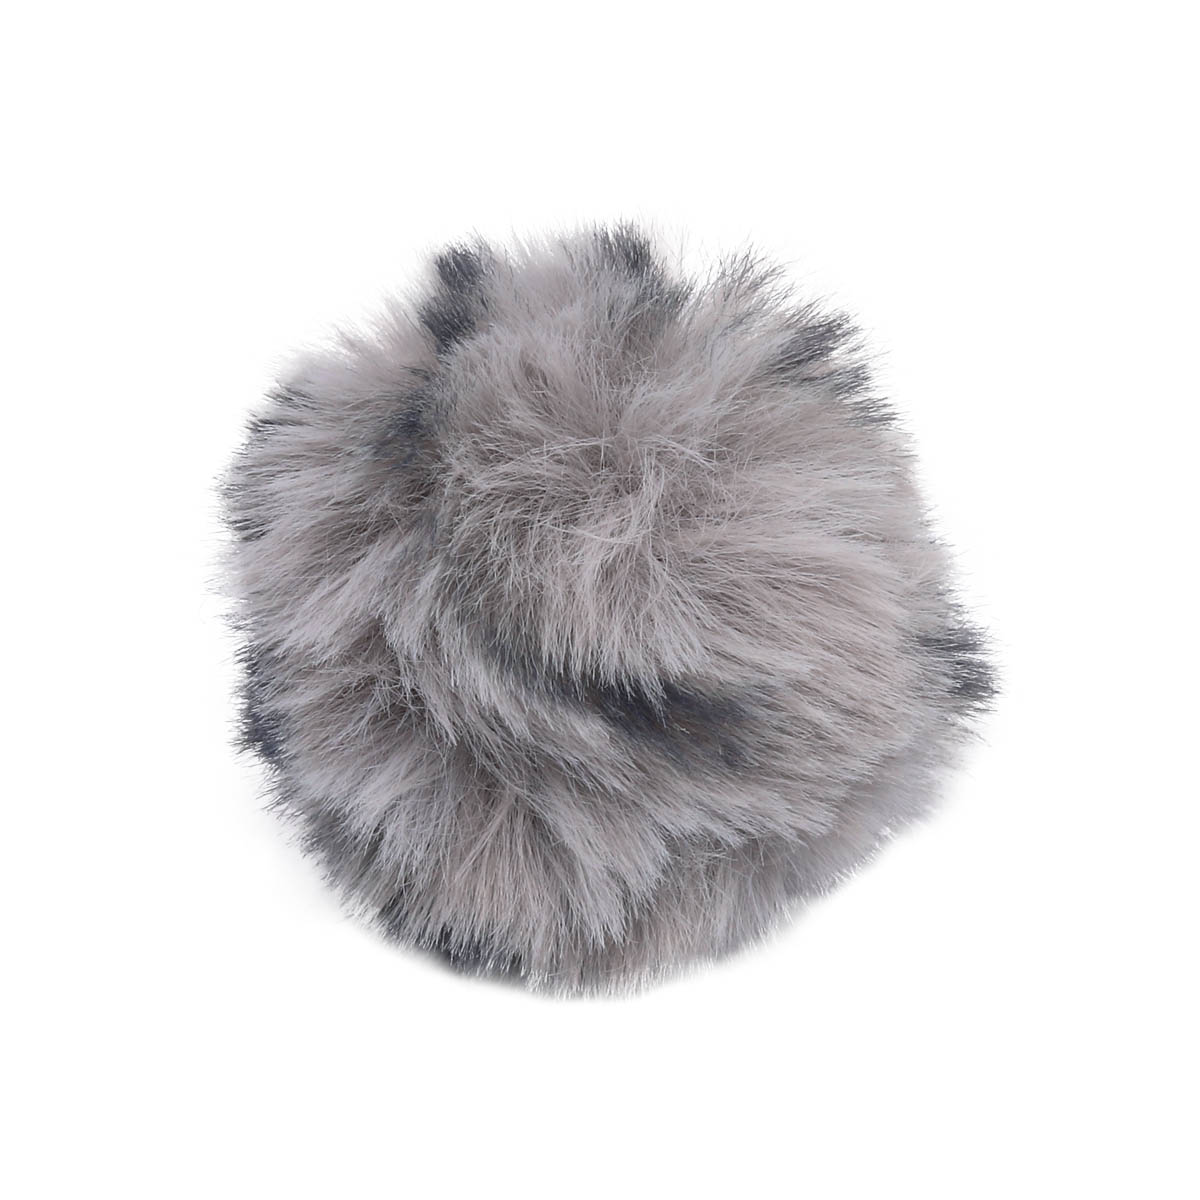 Ar528 Pompon Artificial Fur, Leopard, 5 Cm 2 Pcs/pack (gray)